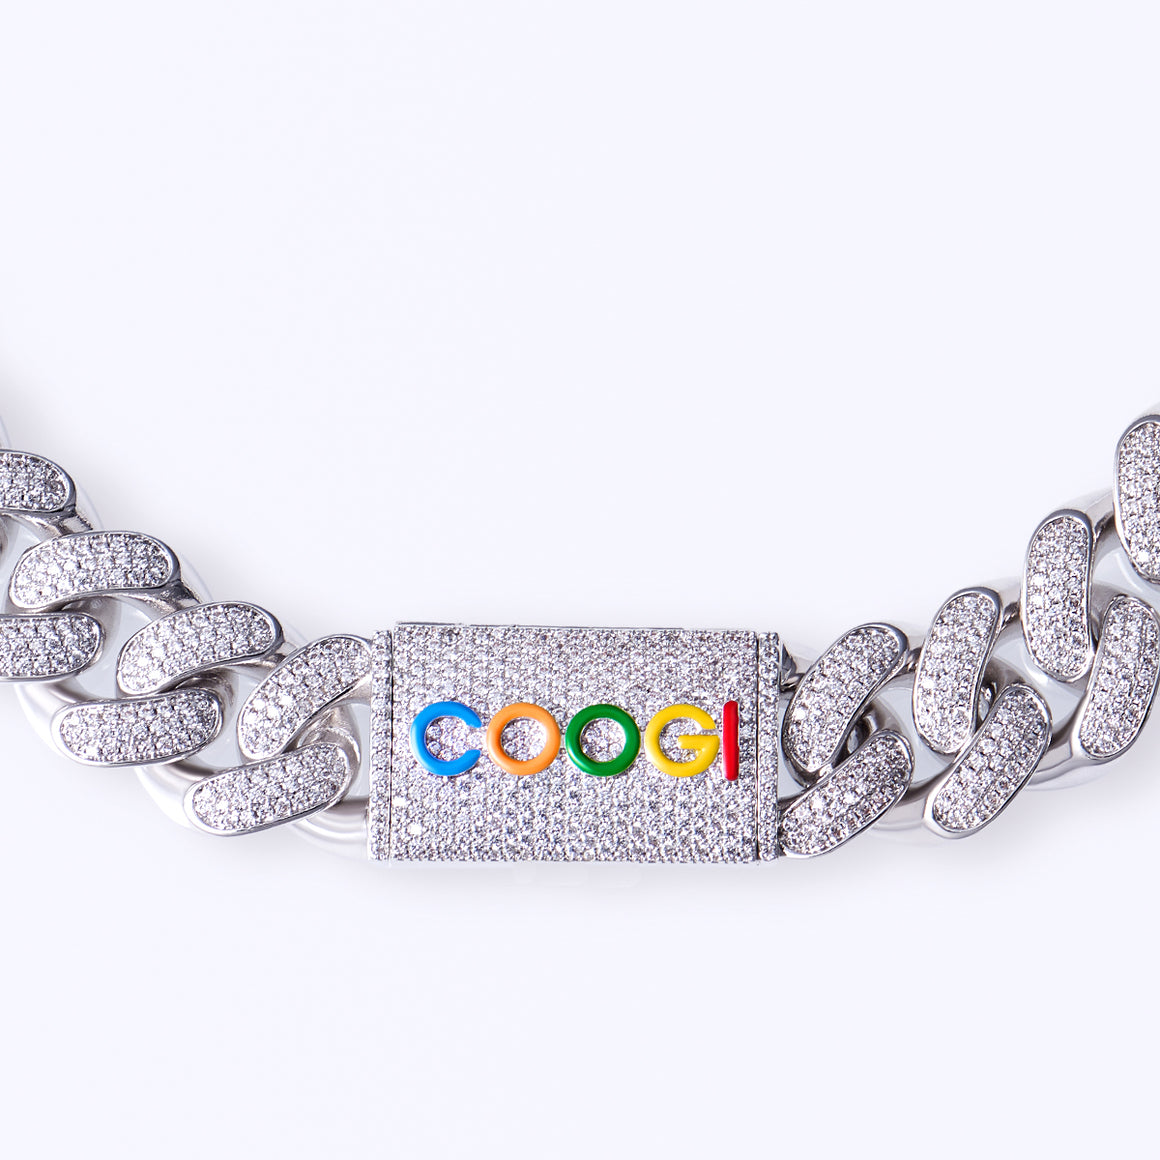 COOGI X Aporro Basic Cuban Link Chain, Ltd Ed - Heavy - White Gold